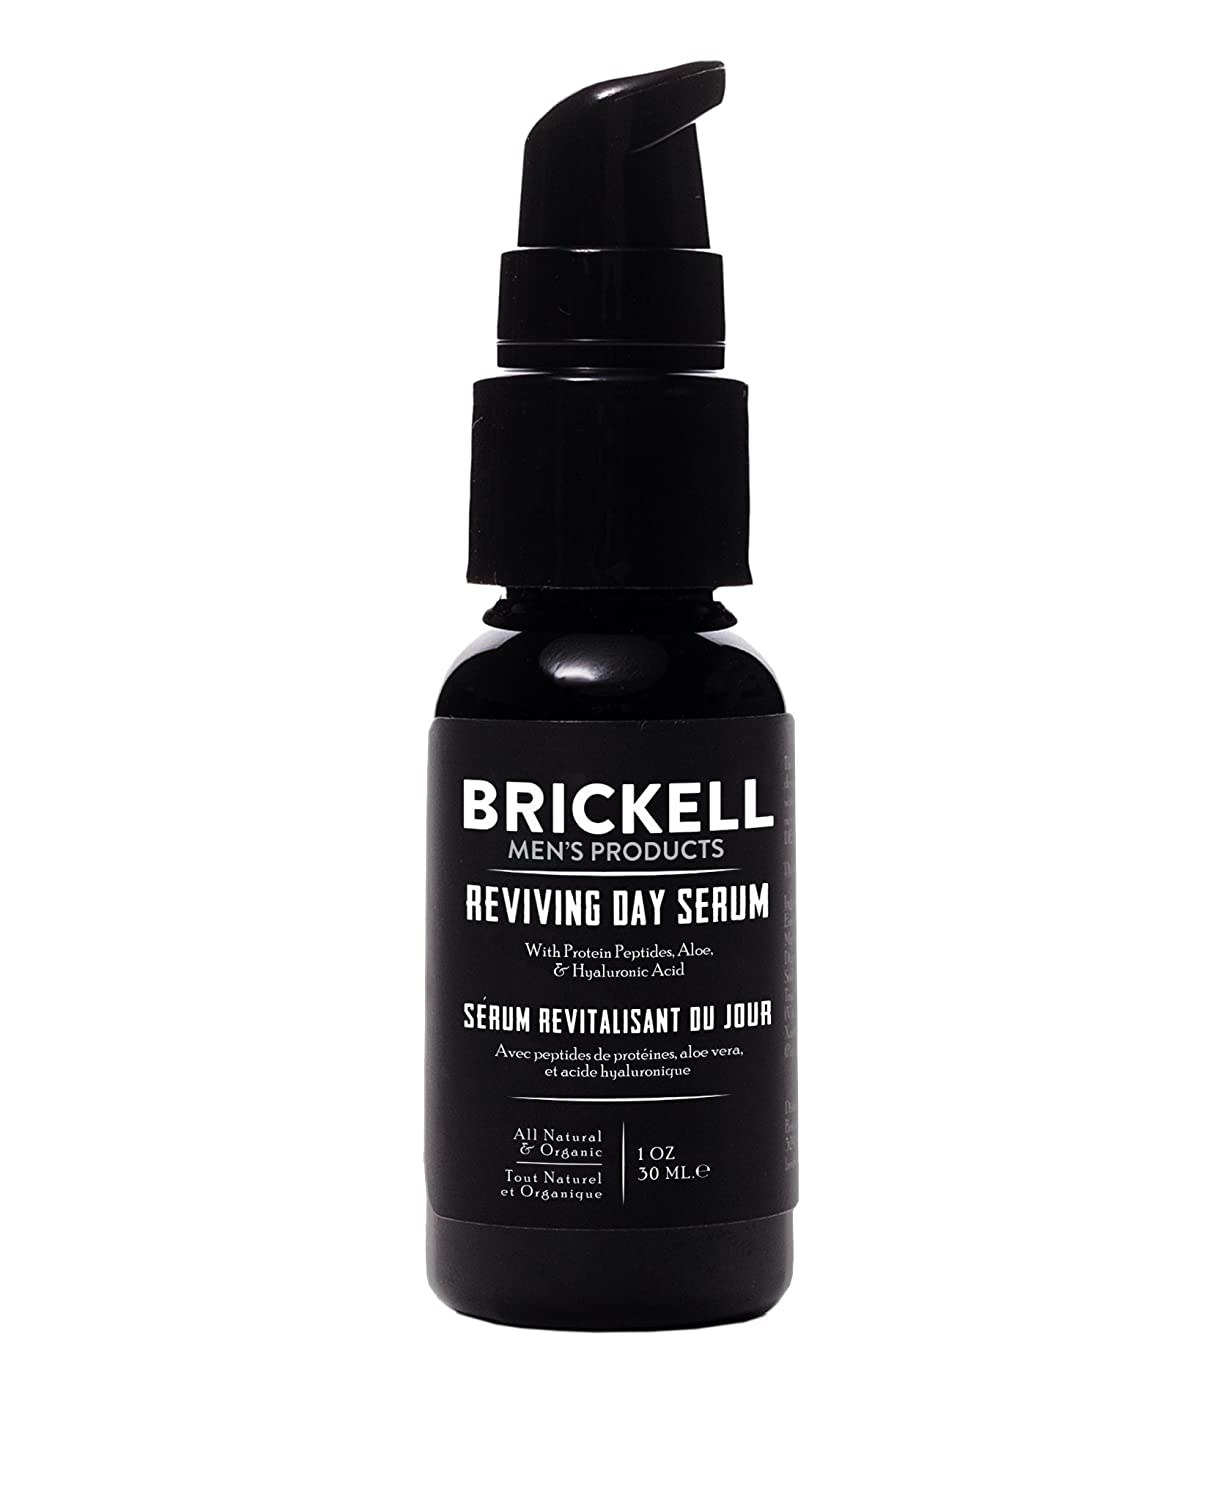 Brickell Men's Anti Aging Reviving Day Serum for Men - Natural & Organic - 1 oz (Scented) Brickell Men's Products